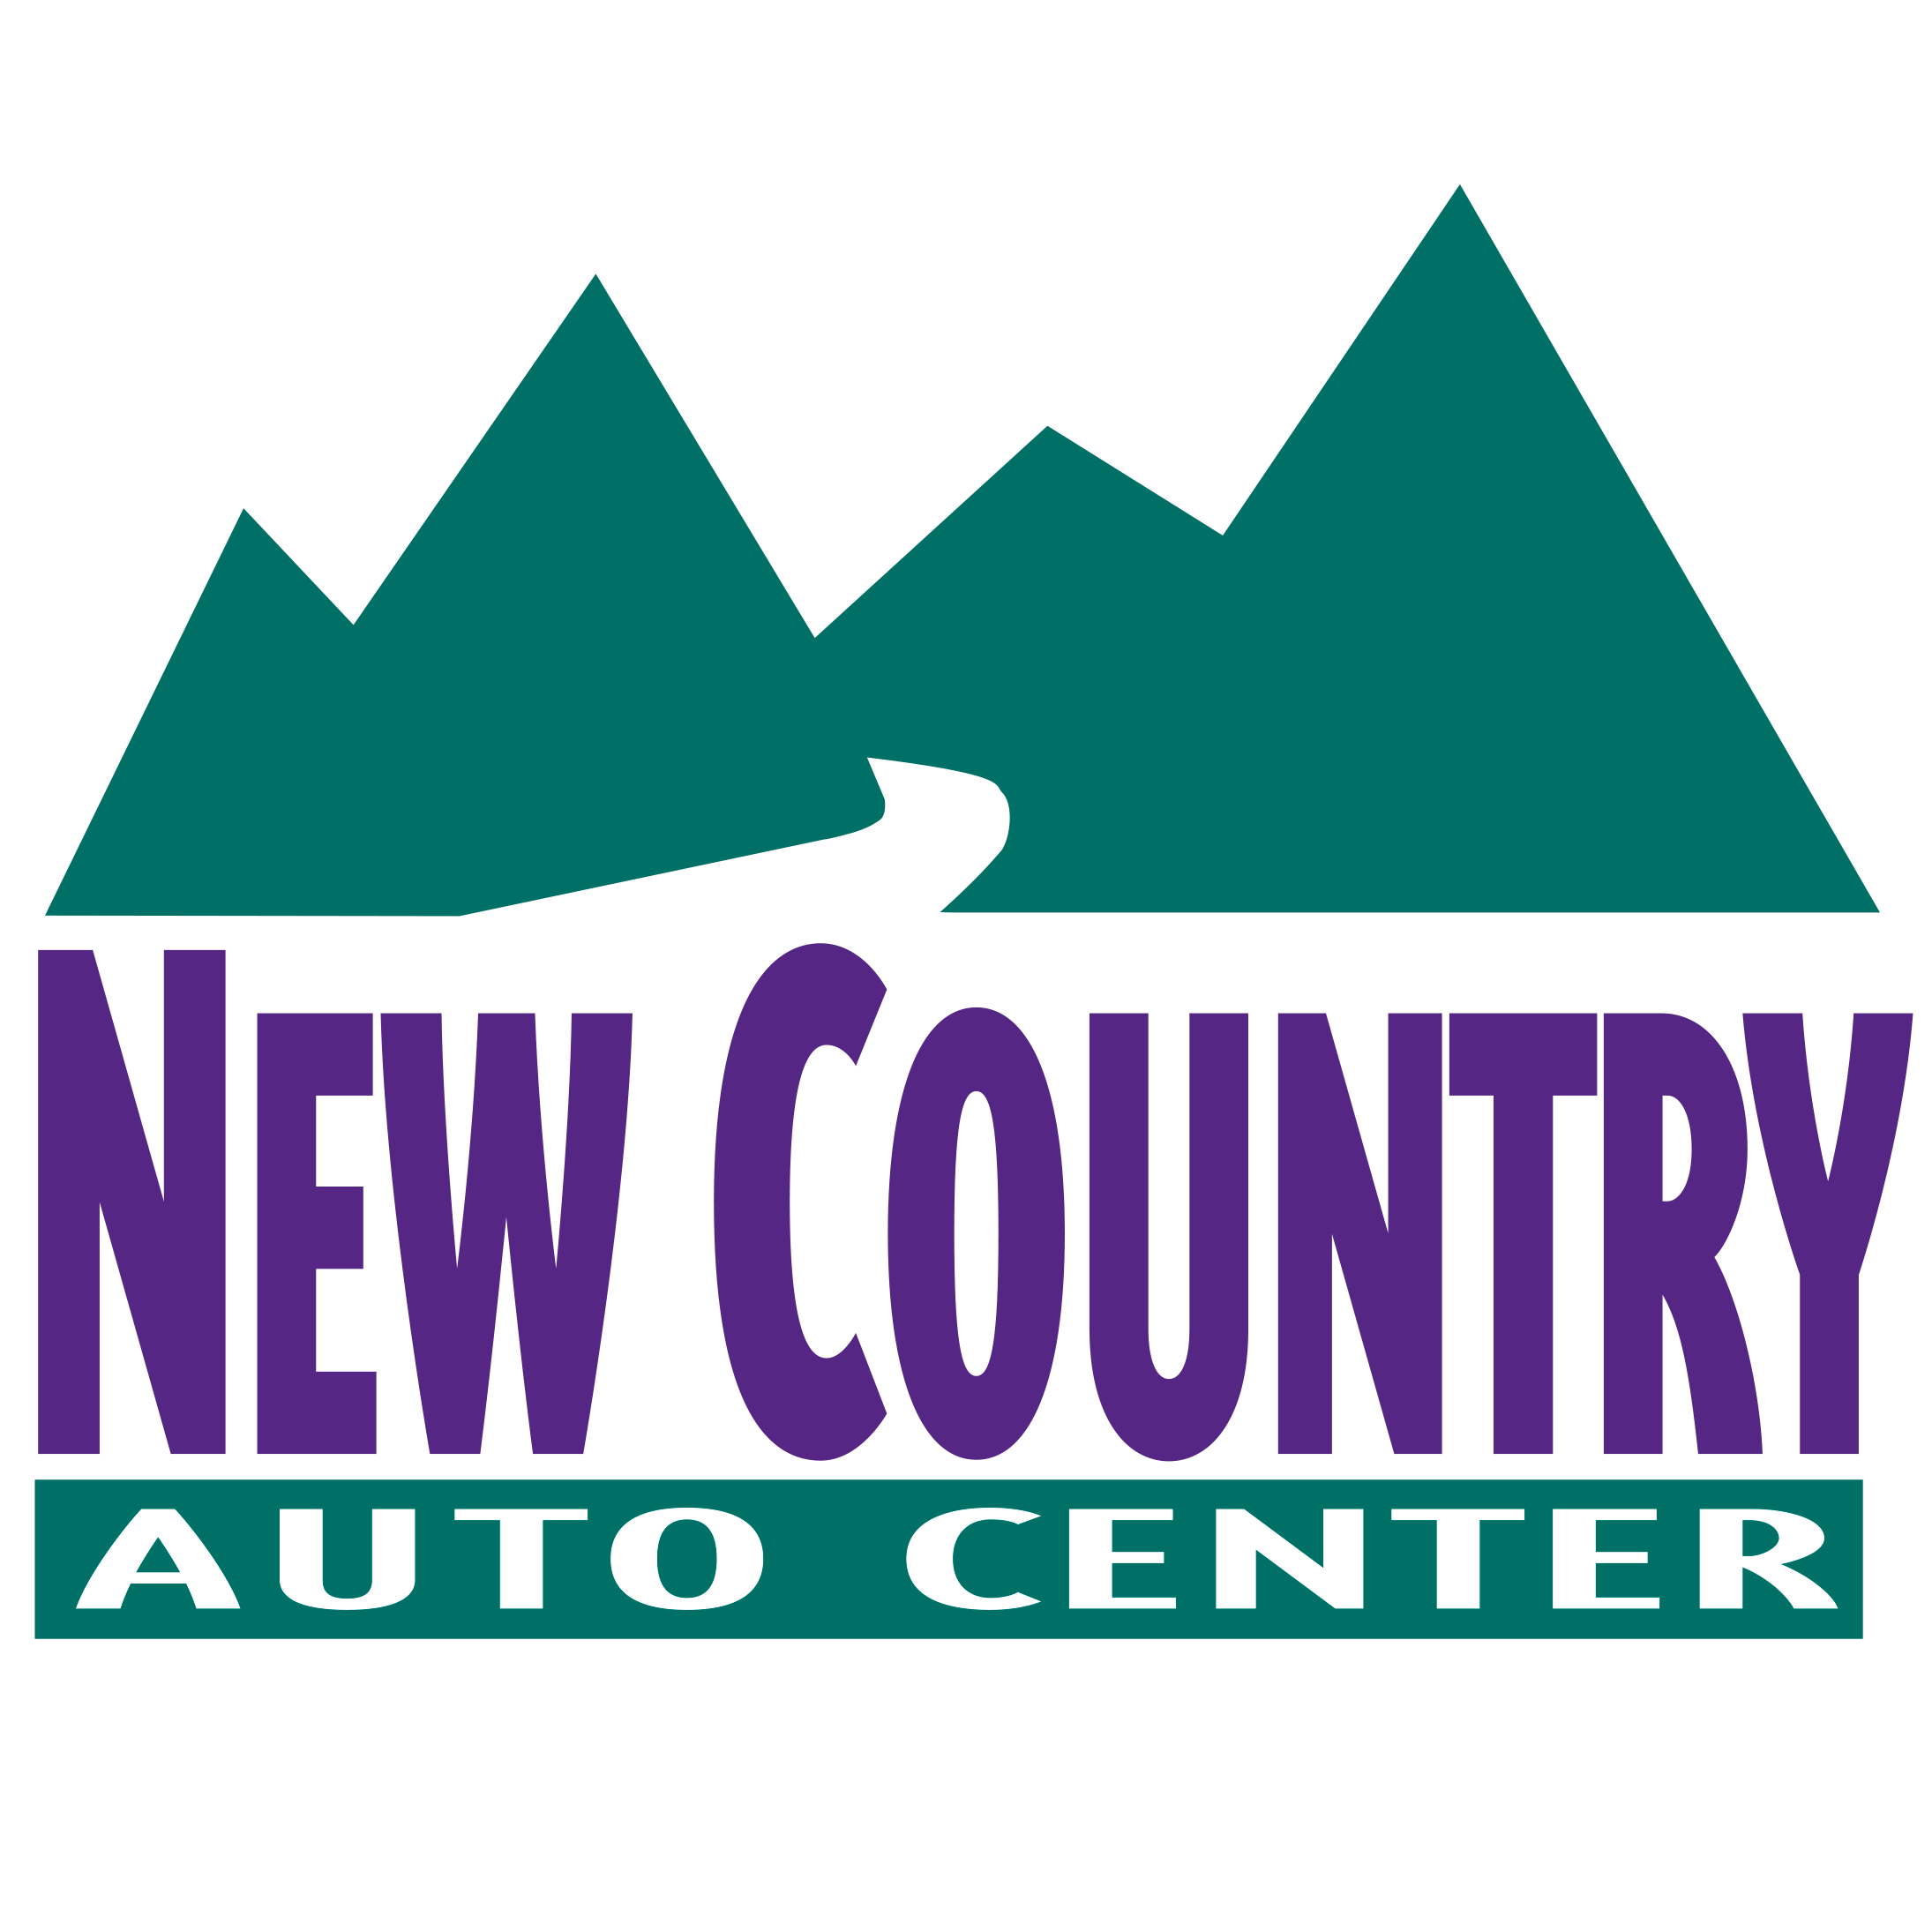 New Country Auto Center - Durango, CO - Auto Dealers